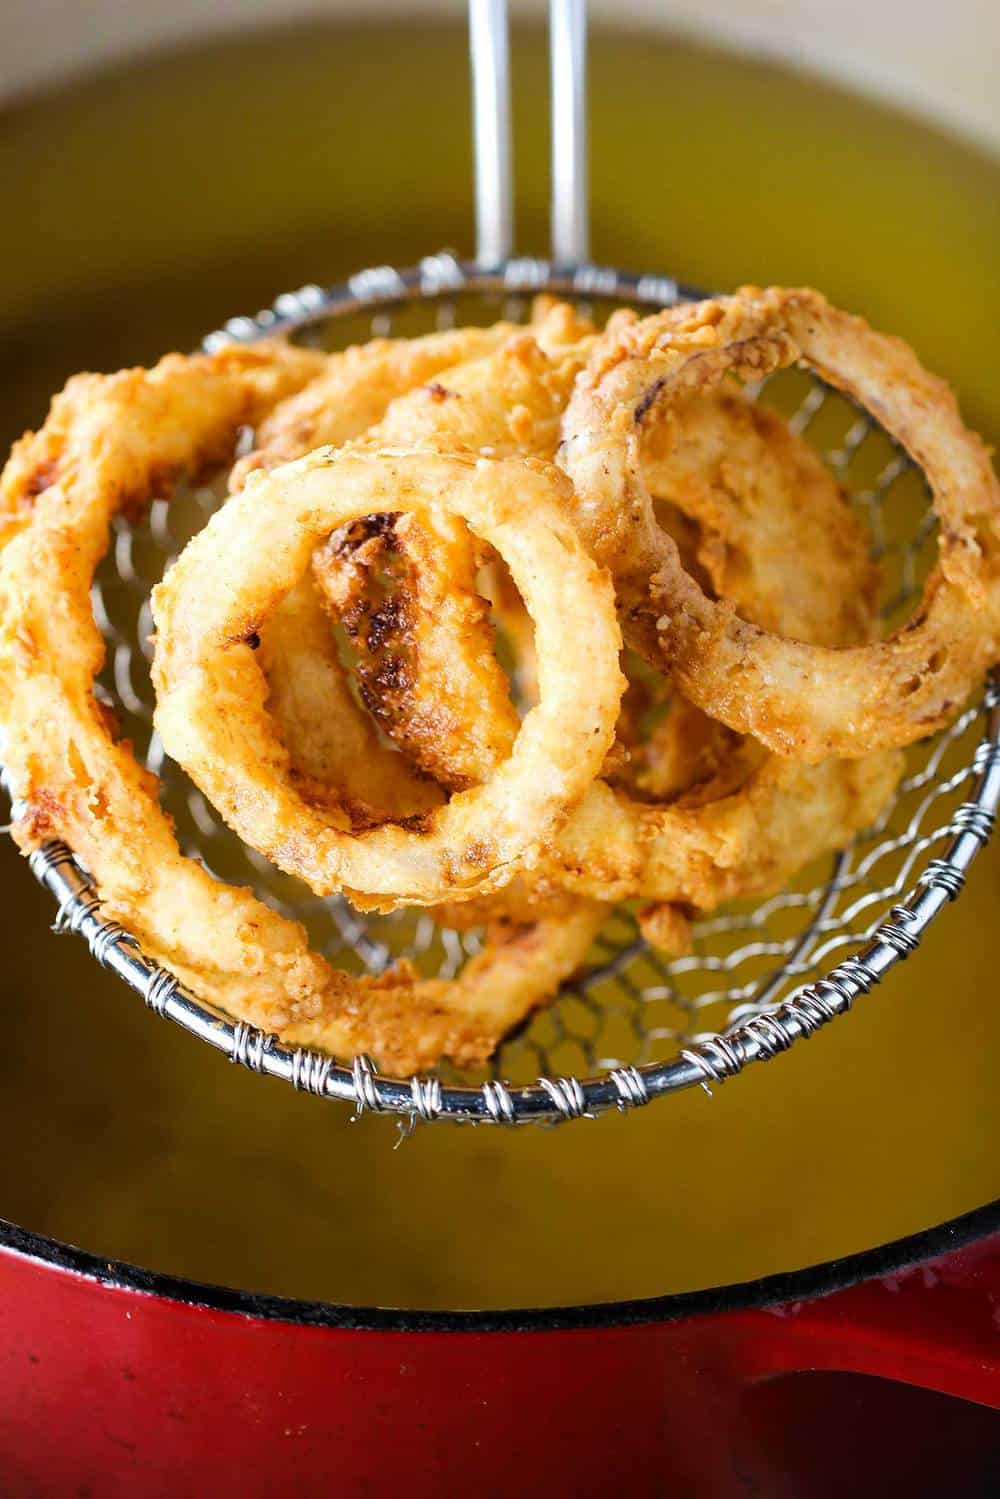 Onion rings being pulled from a deep fryer